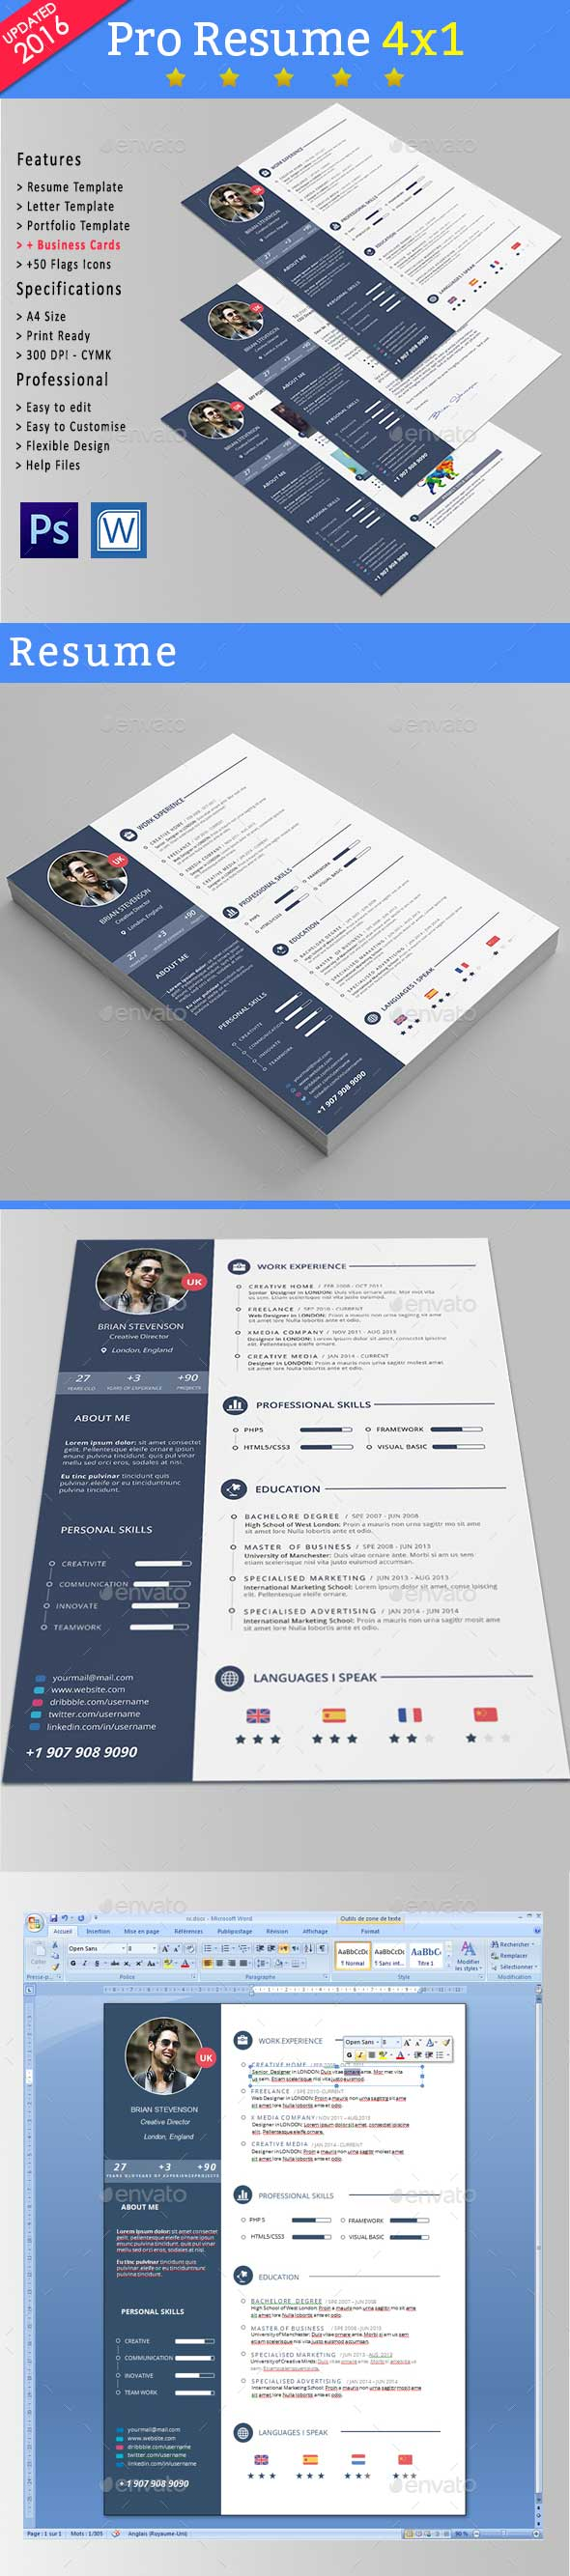 professional-microsoft-word-resume-template-download